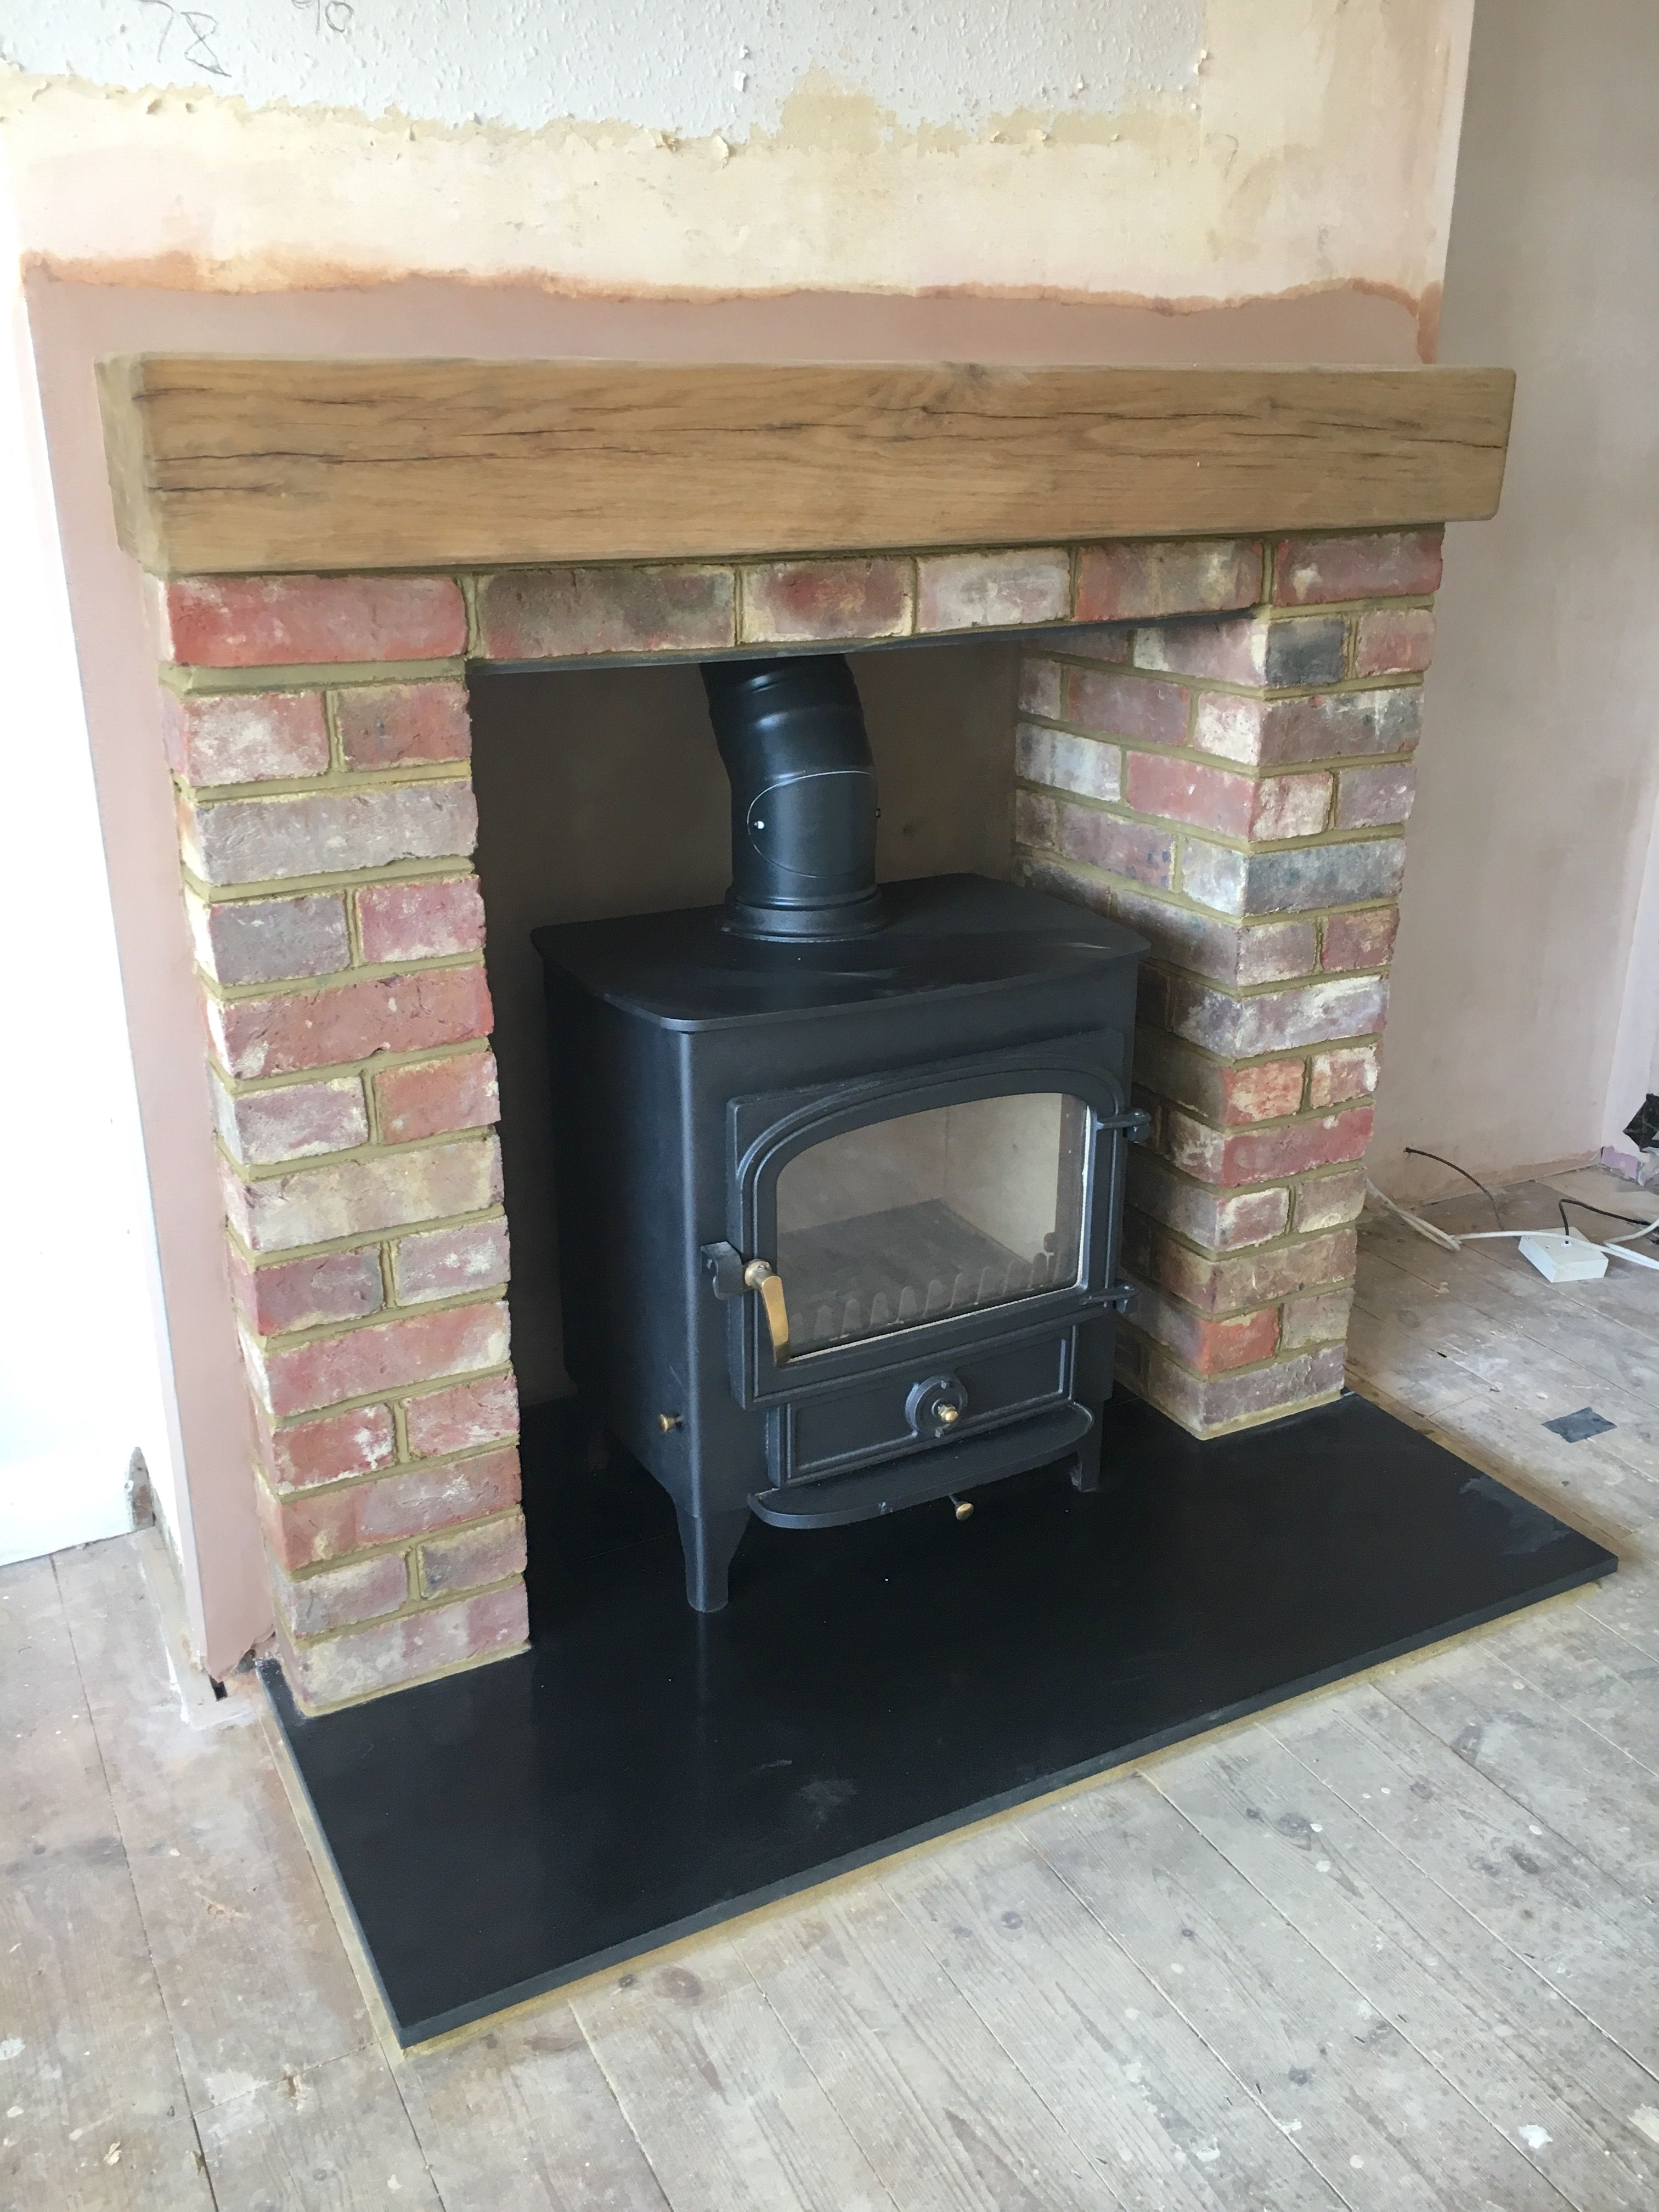 Amazing Clearview Wood Stove With Rebuilt Fireplace And New Honed Granite Hearth Like Granite Hearth Wood Stove Fireplace Remodel